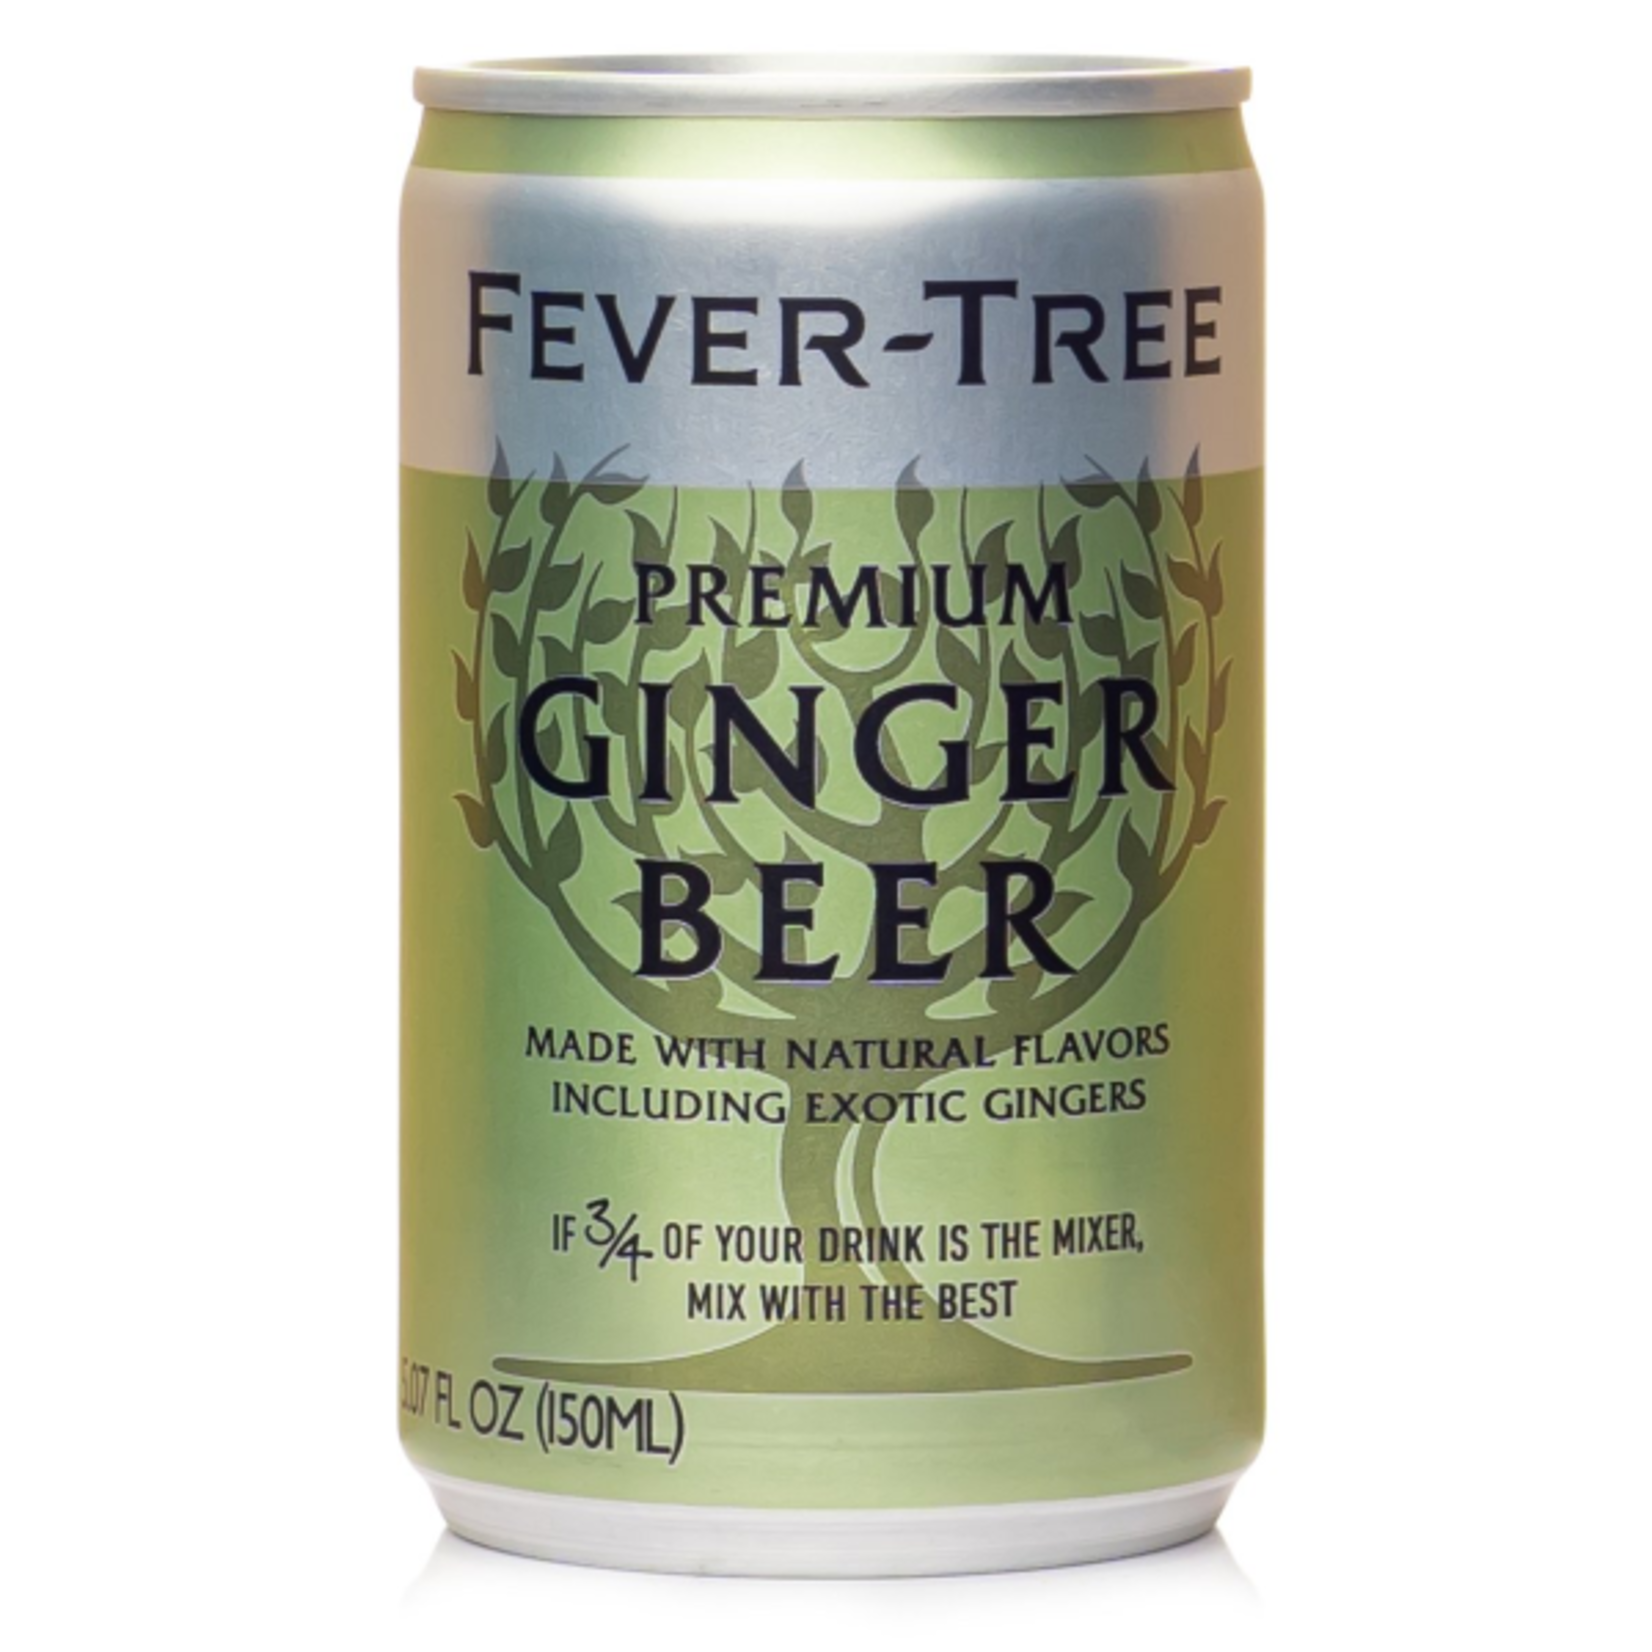 Fever-Tree Fever-Tree Ginger Beer Cans